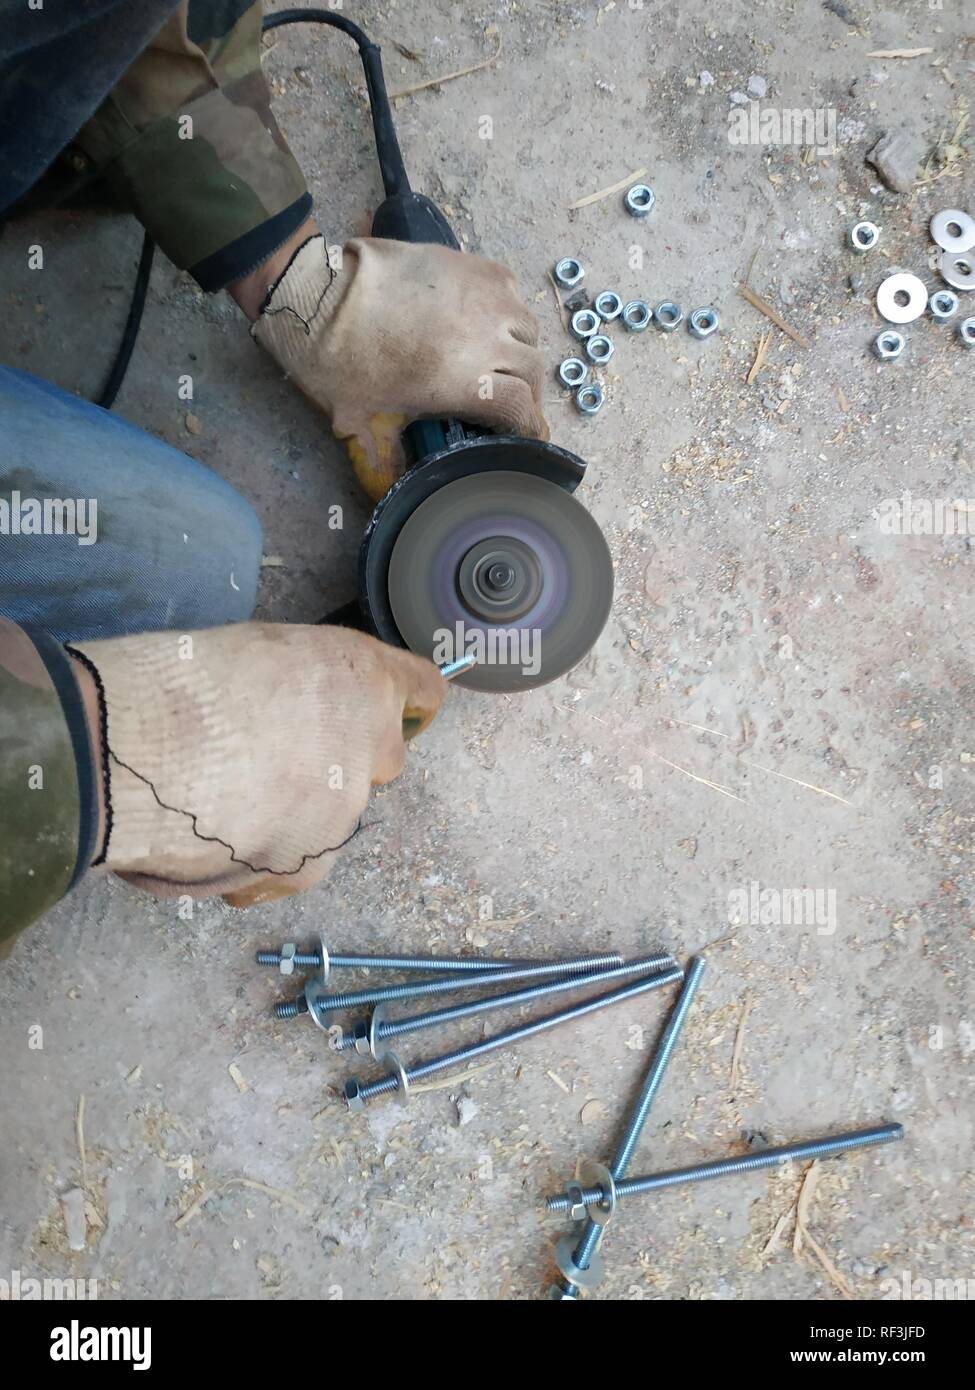 the worker uses an angle grinder to sharpen the bolts, a close-up plan 2019 - Stock Image